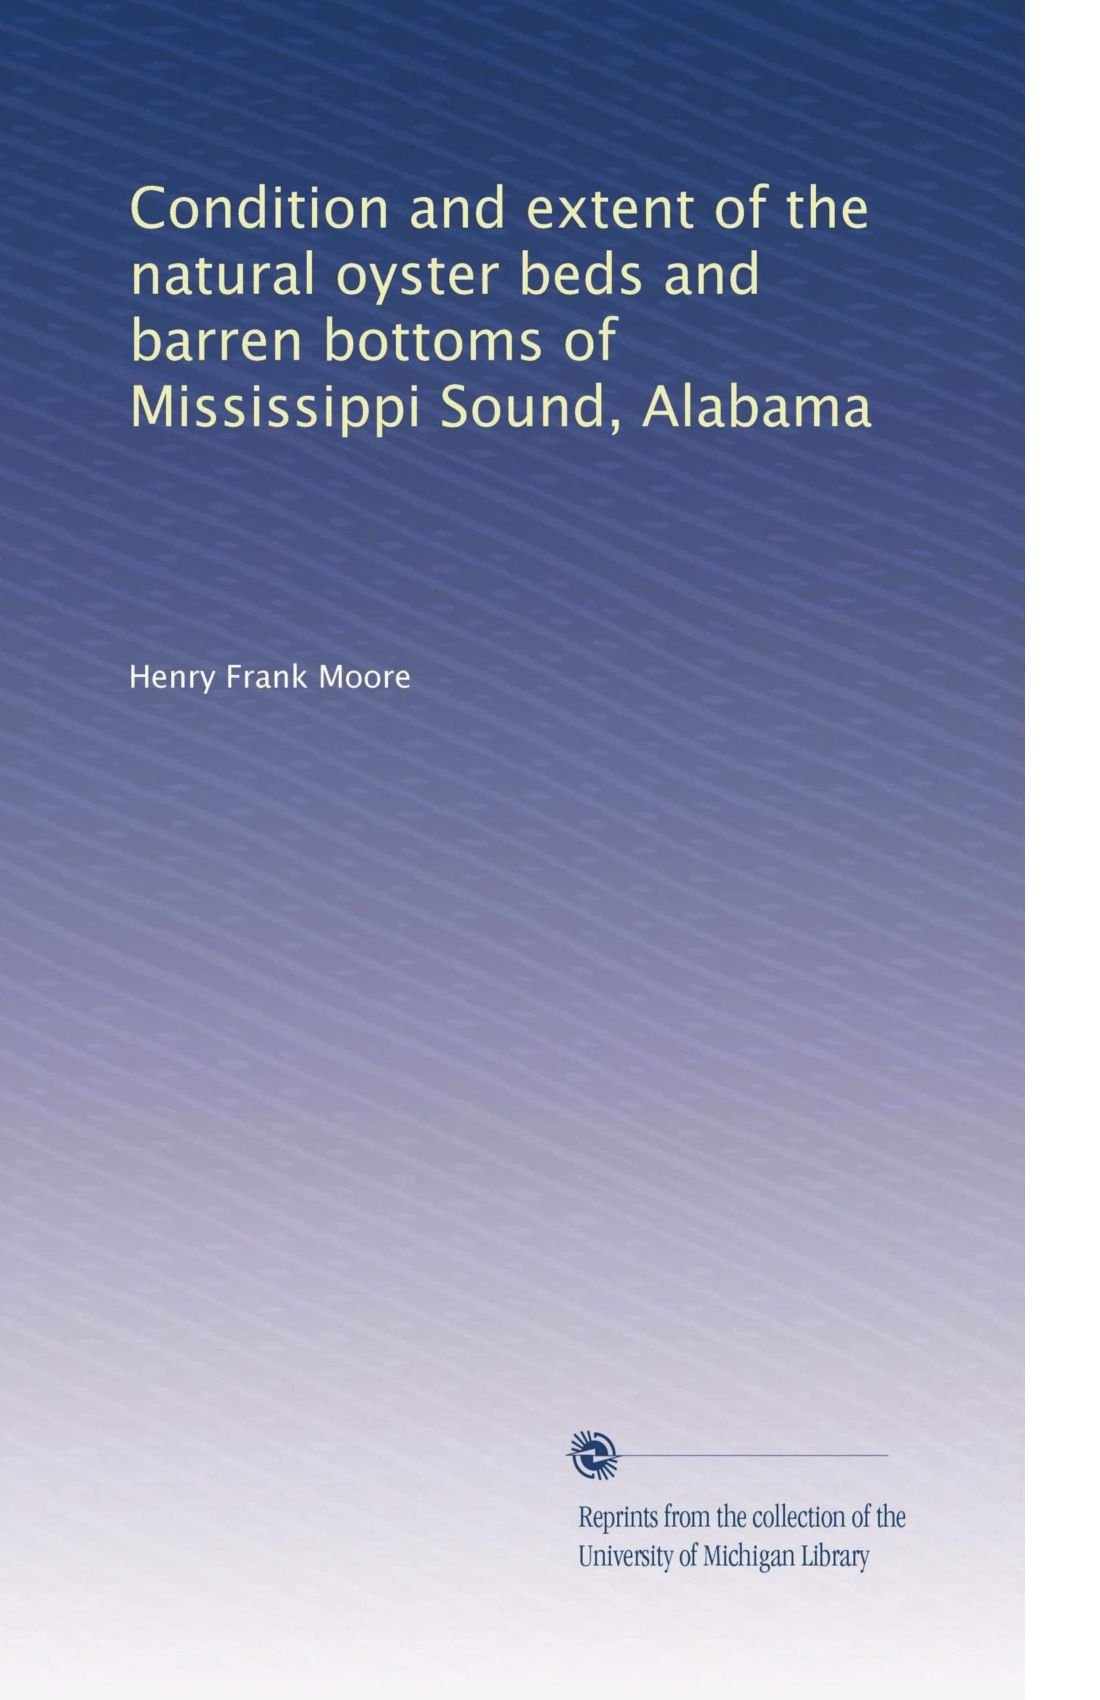 Download Condition and extent of the natural oyster beds and barren bottoms of Mississippi Sound, Alabama pdf